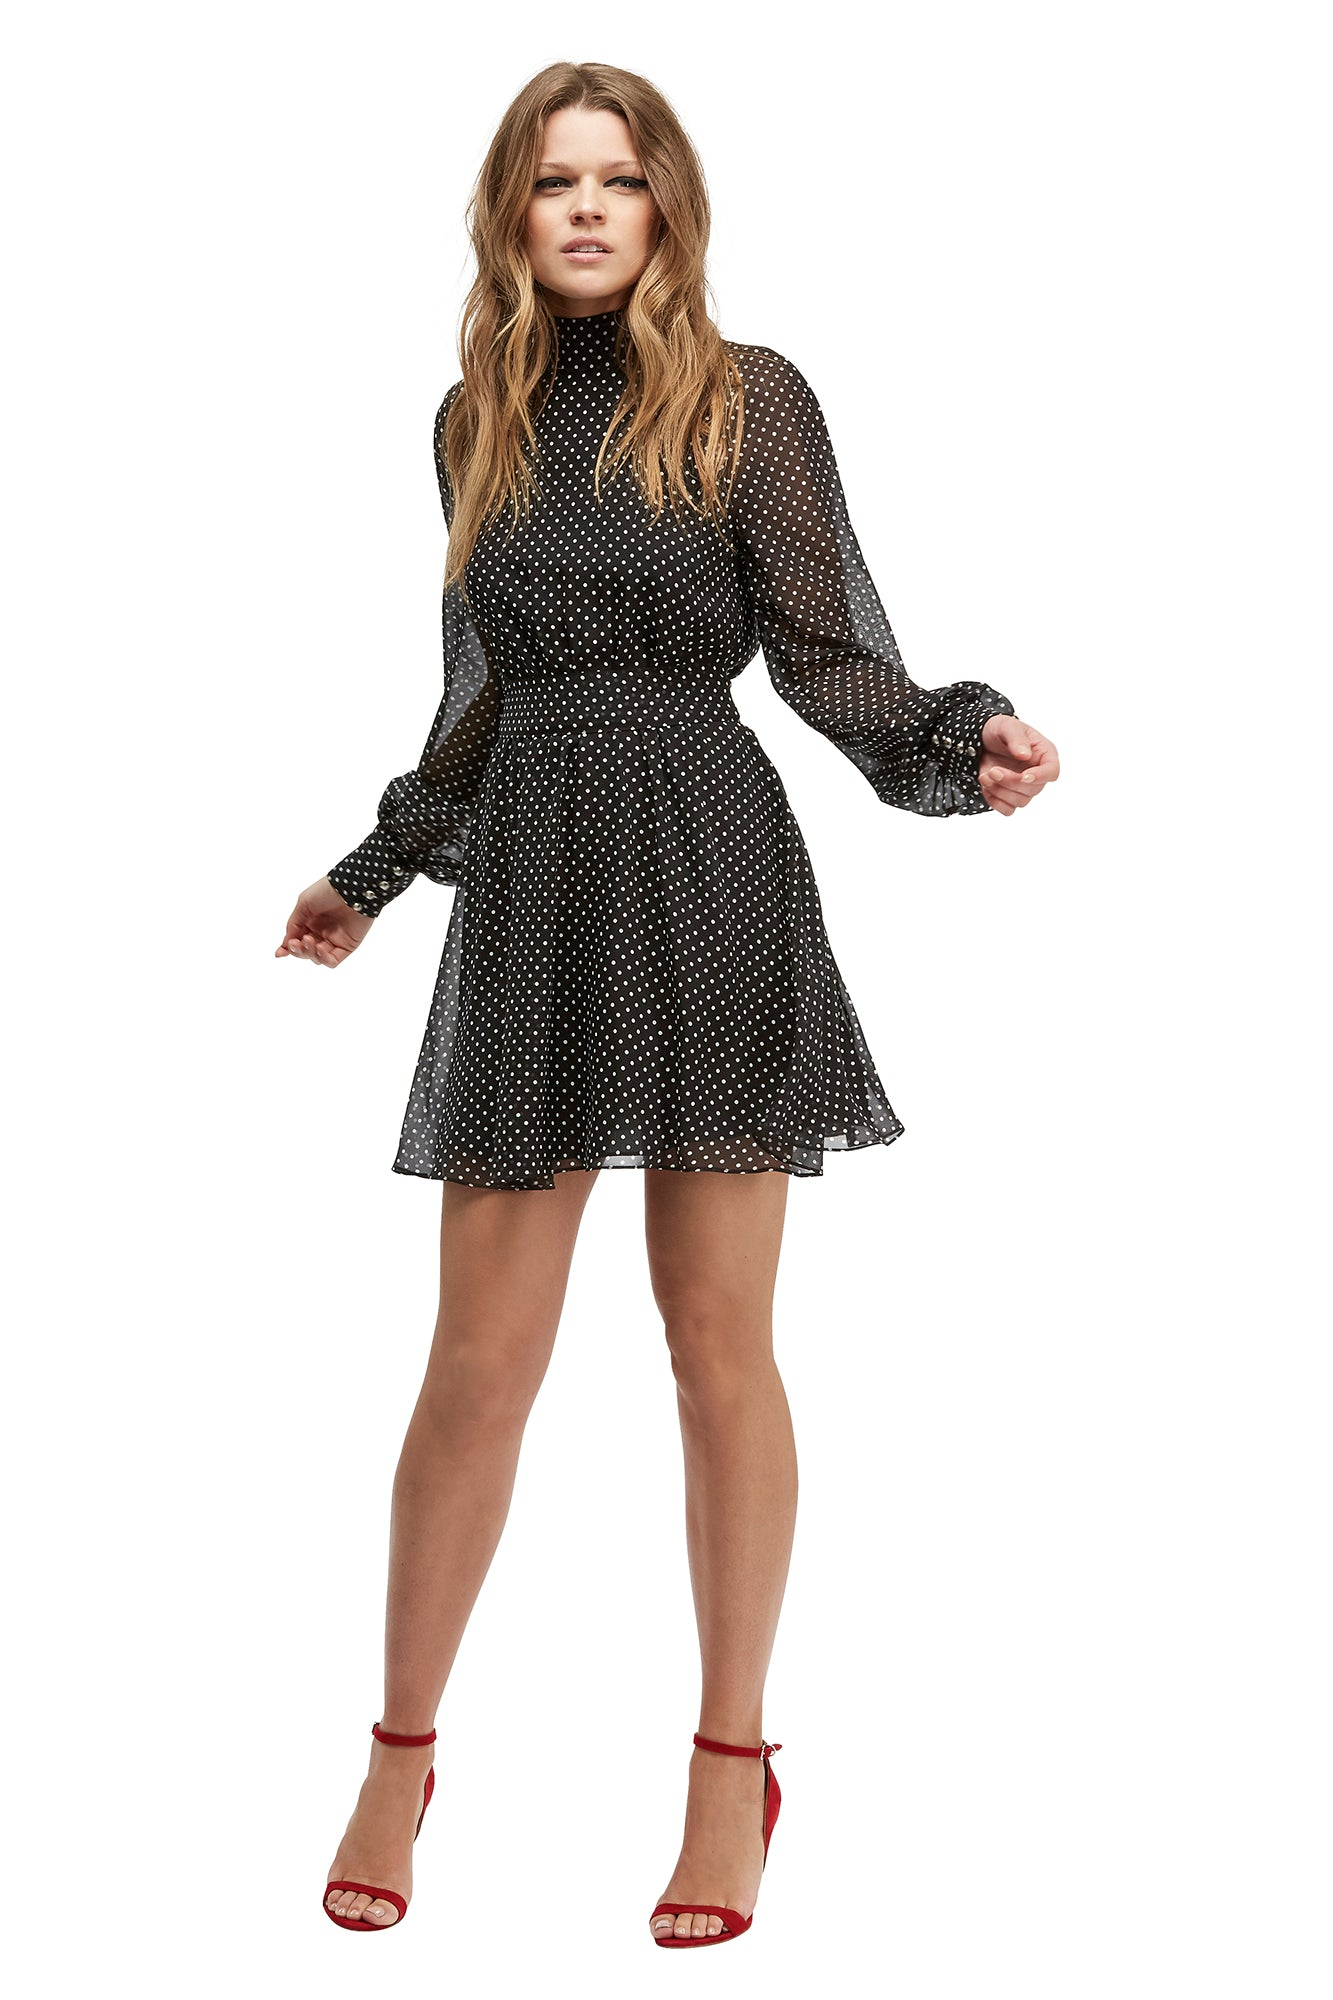 She Breaks Hearts Mini Dress Black/White